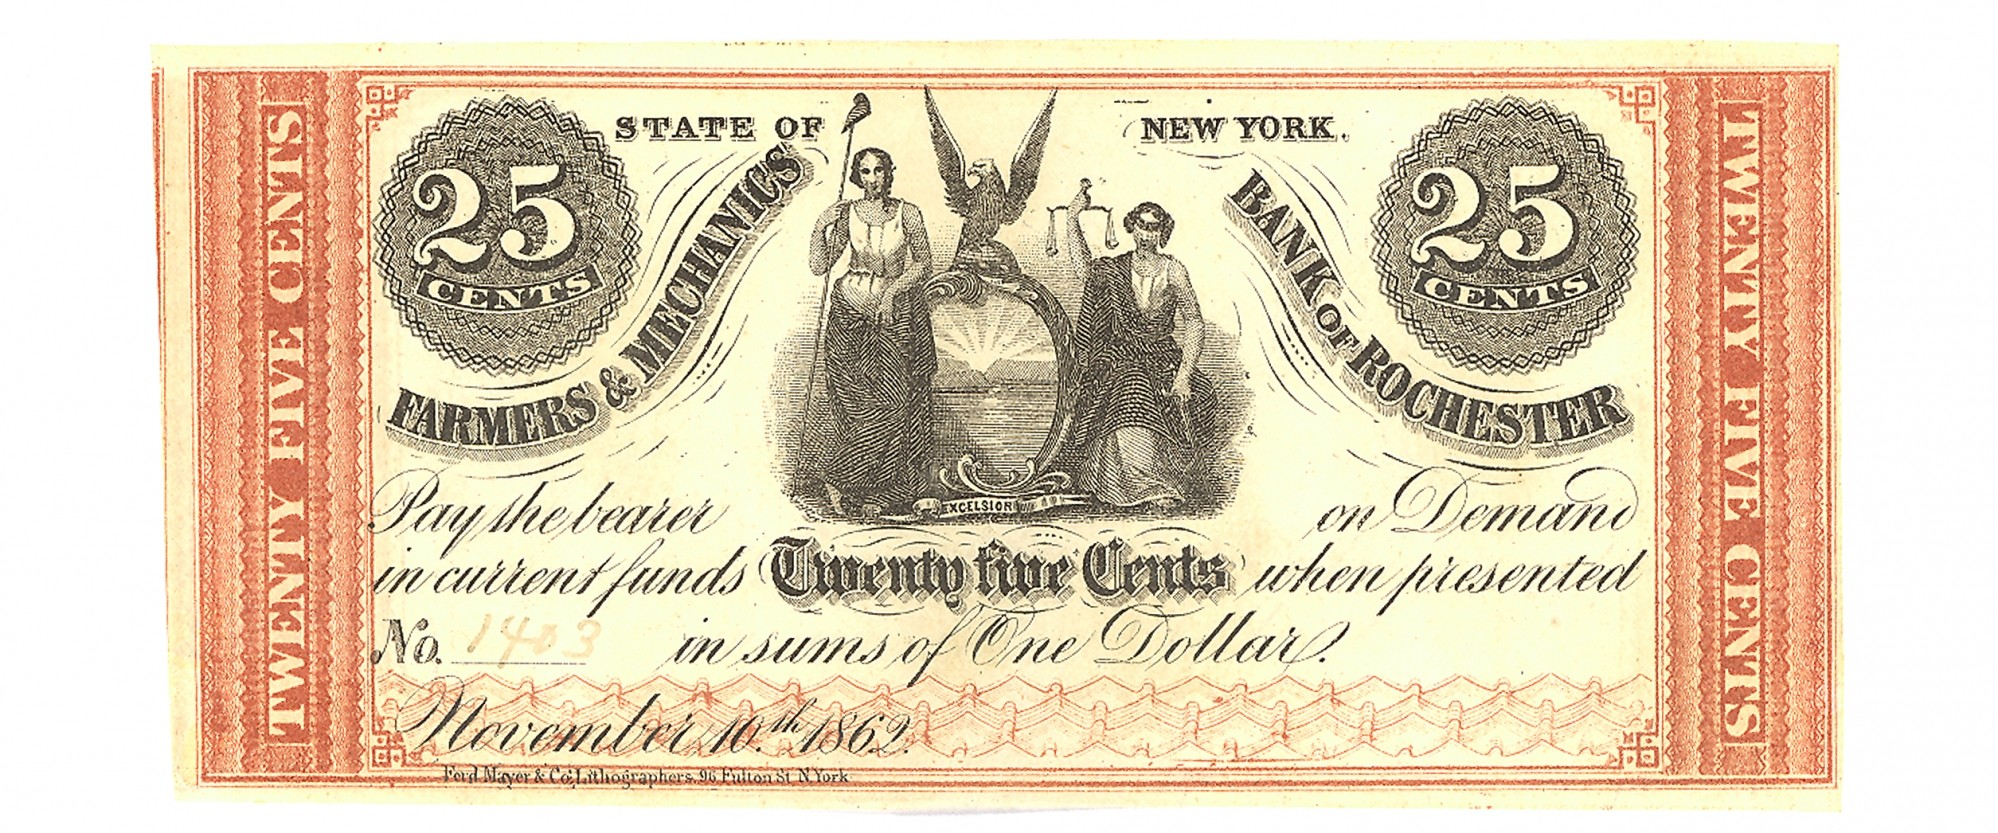 THE FARMERS AND MECHANICS BANK OF ROCHESTER, NEW YORK $.25 NOTE